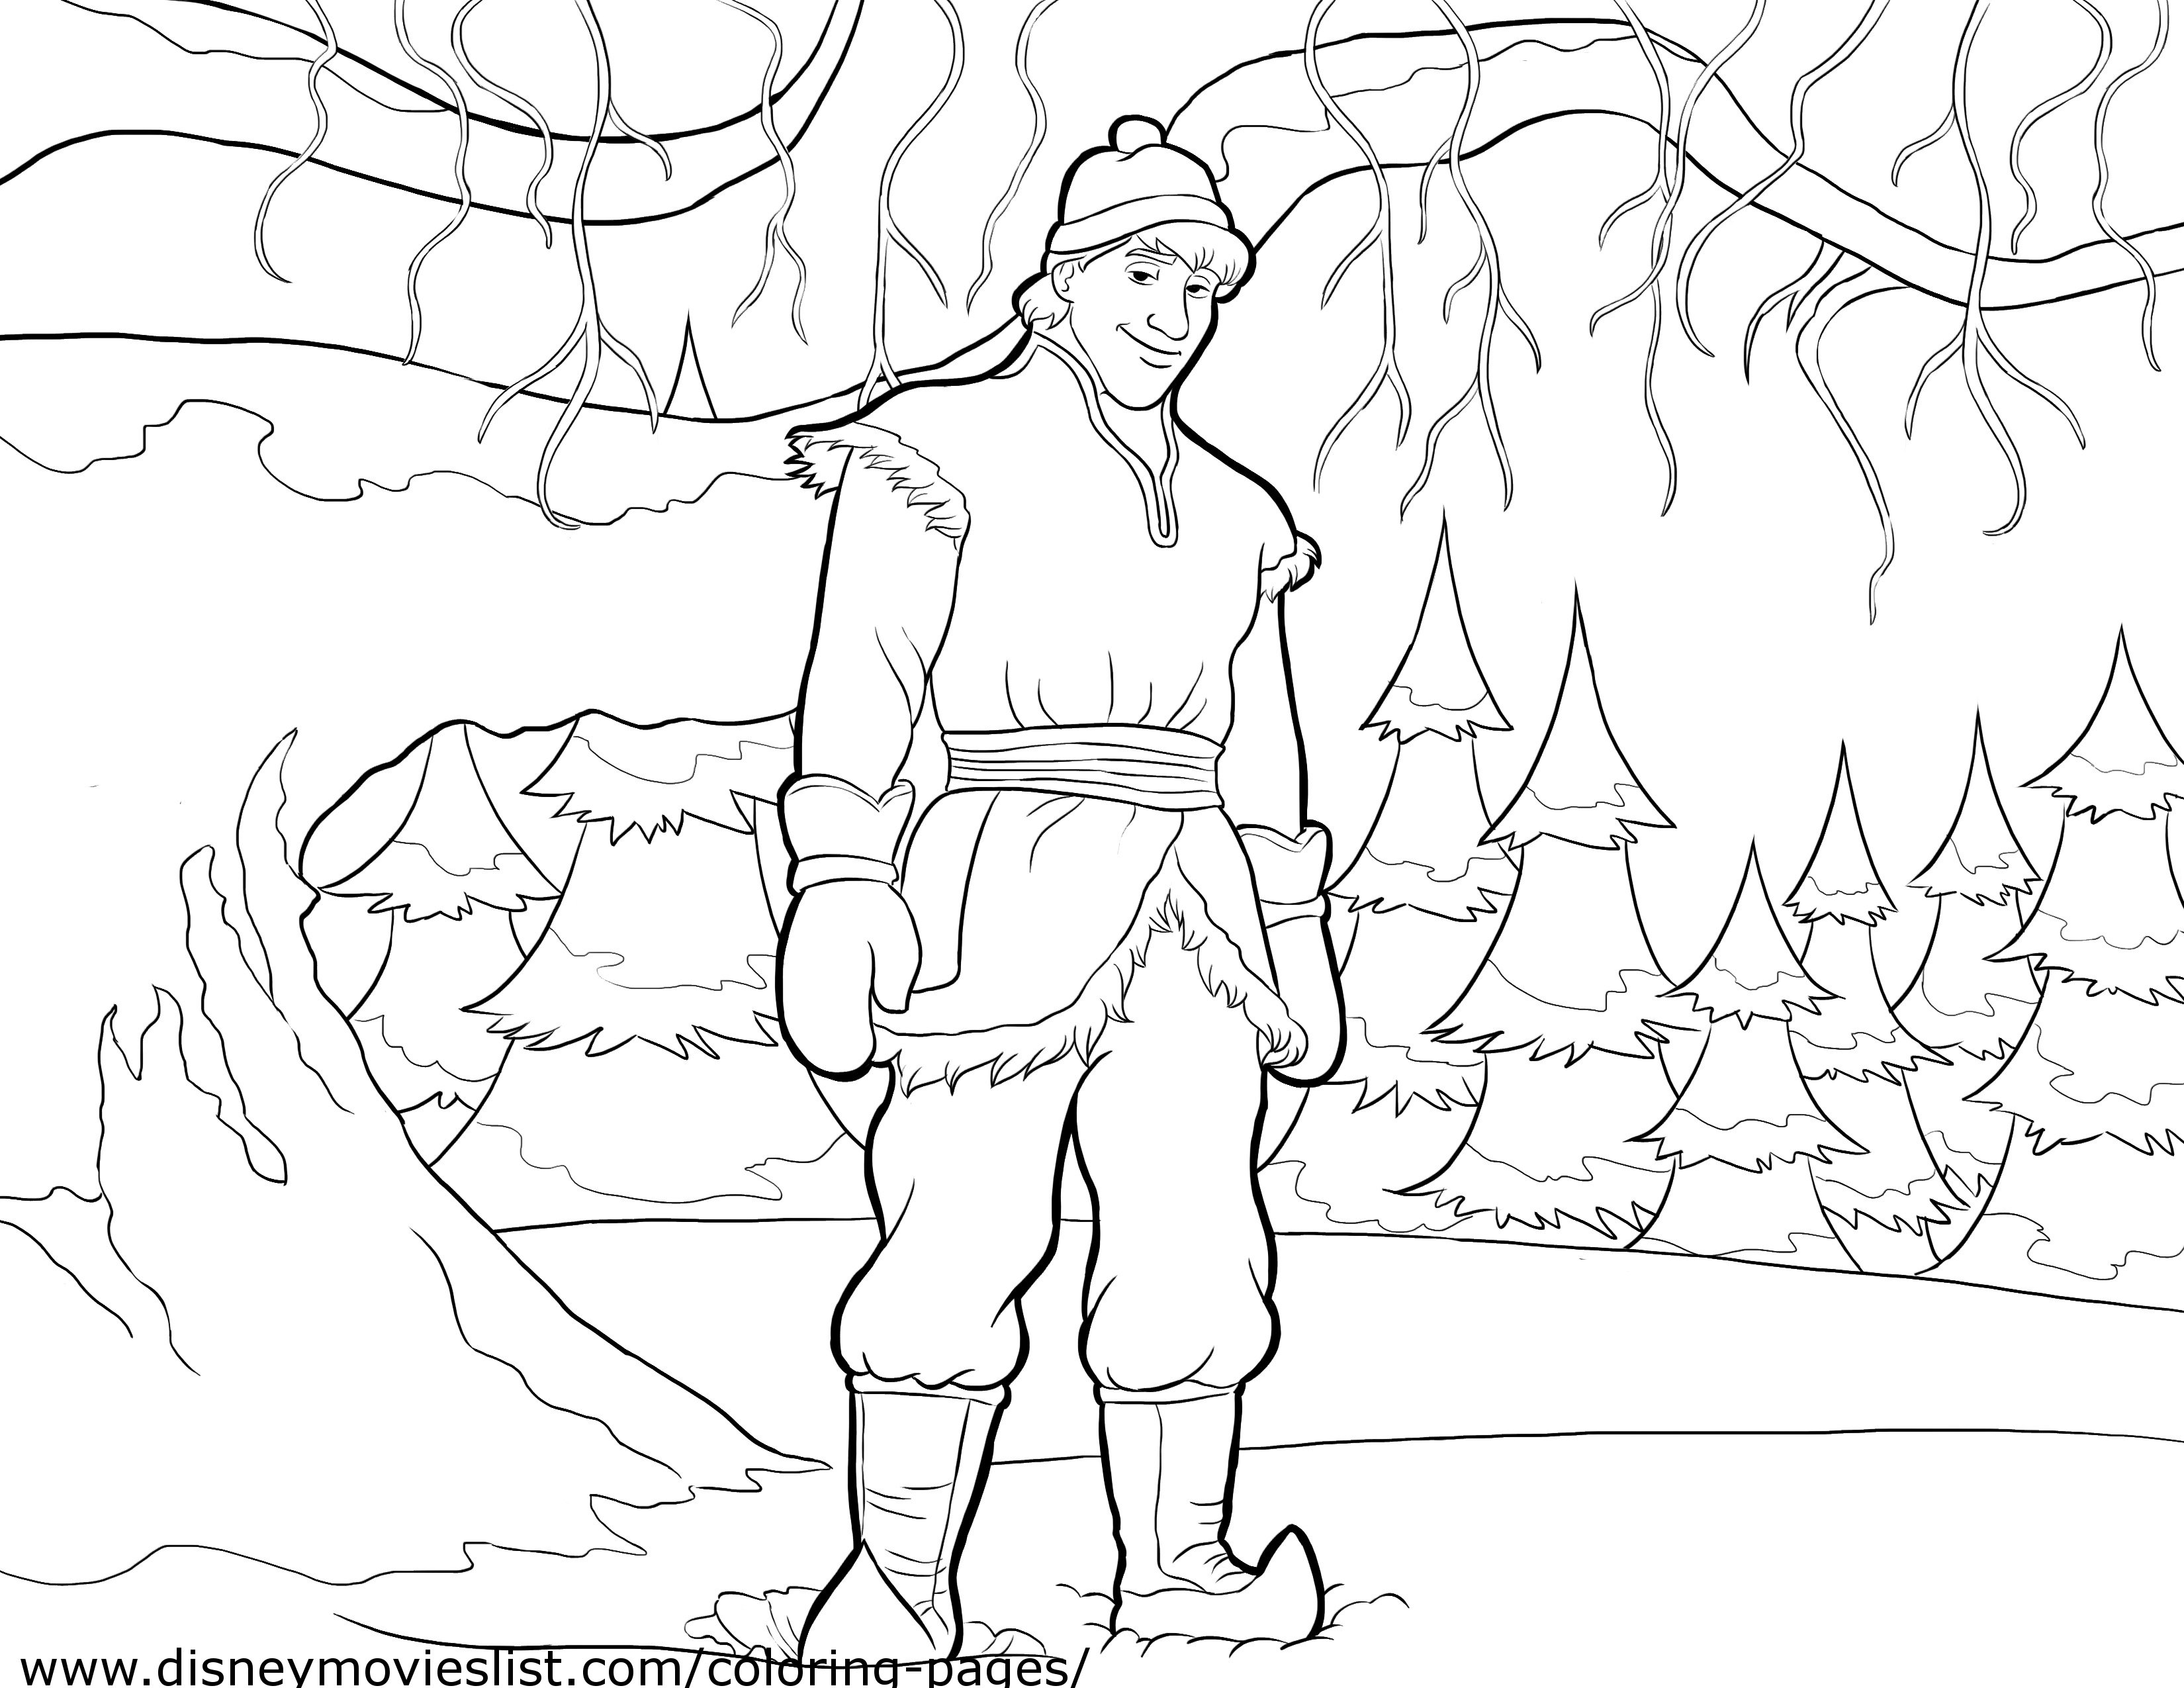 Free Frozen Coloring Pages Kristoff : Kristoff coloring page anna and photo